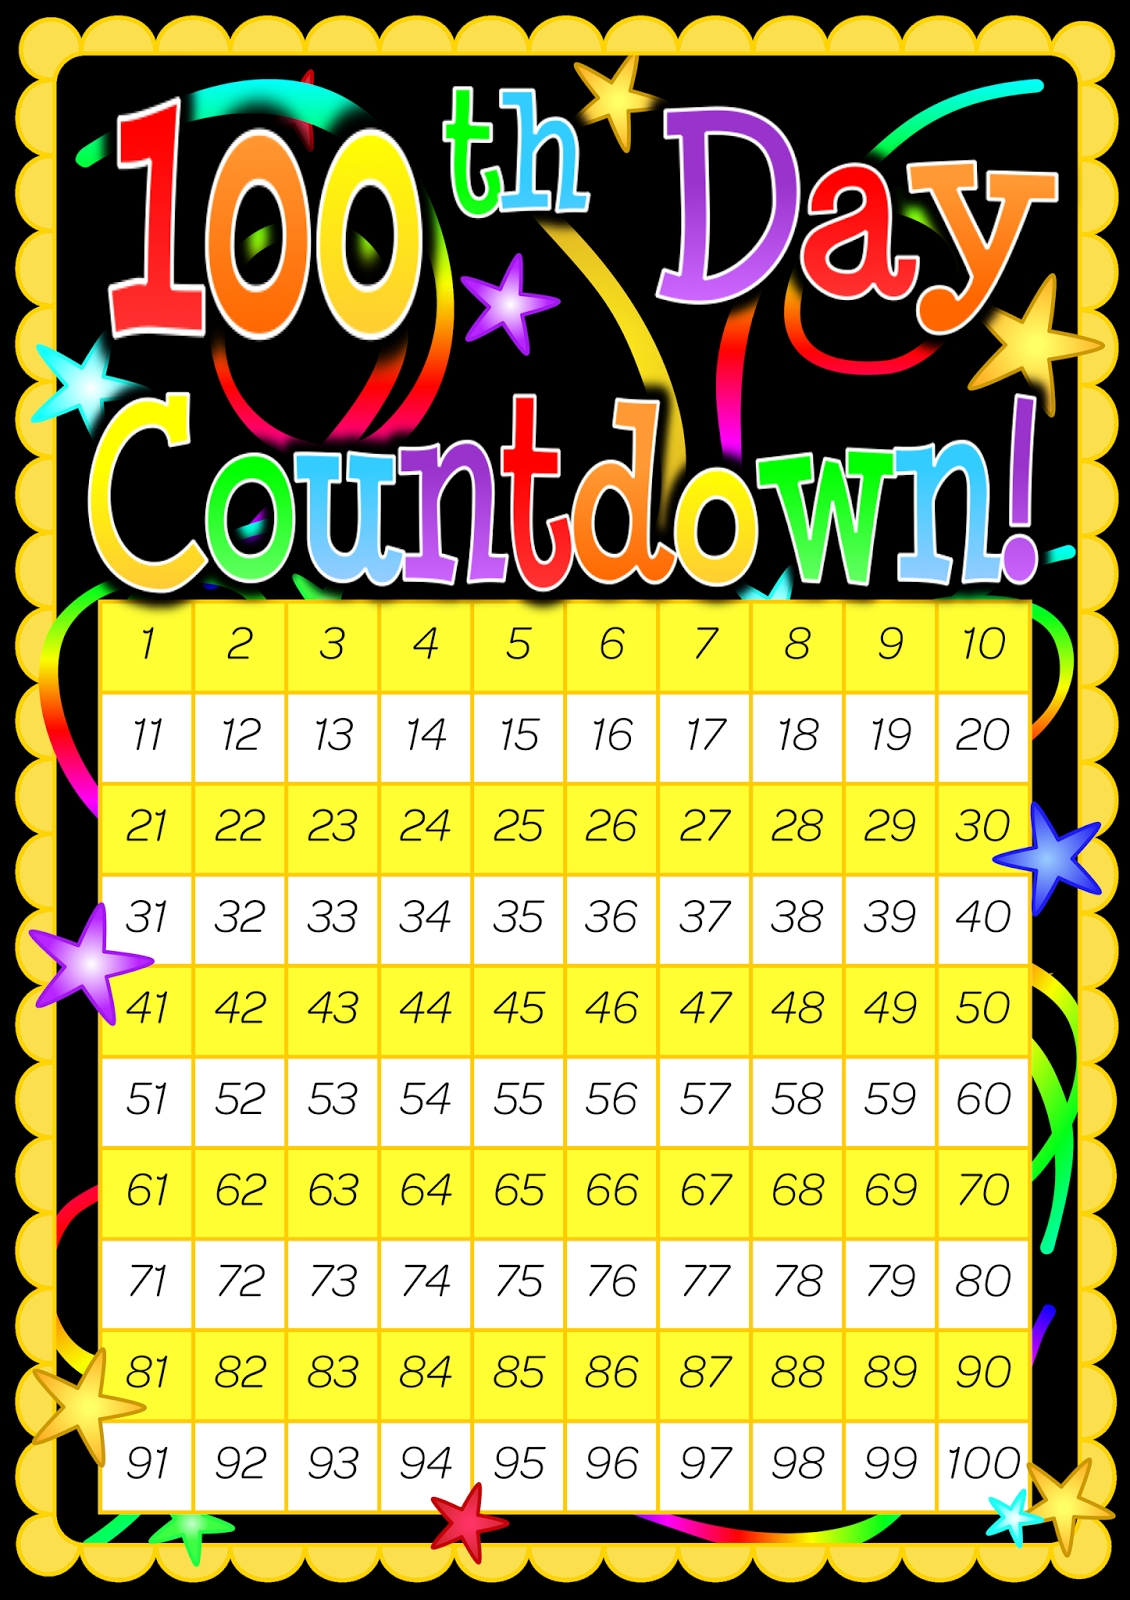 100 Day Countdown Poster. Included Is A 200 Day Countdown 100 Day Countdown Calendar Printable